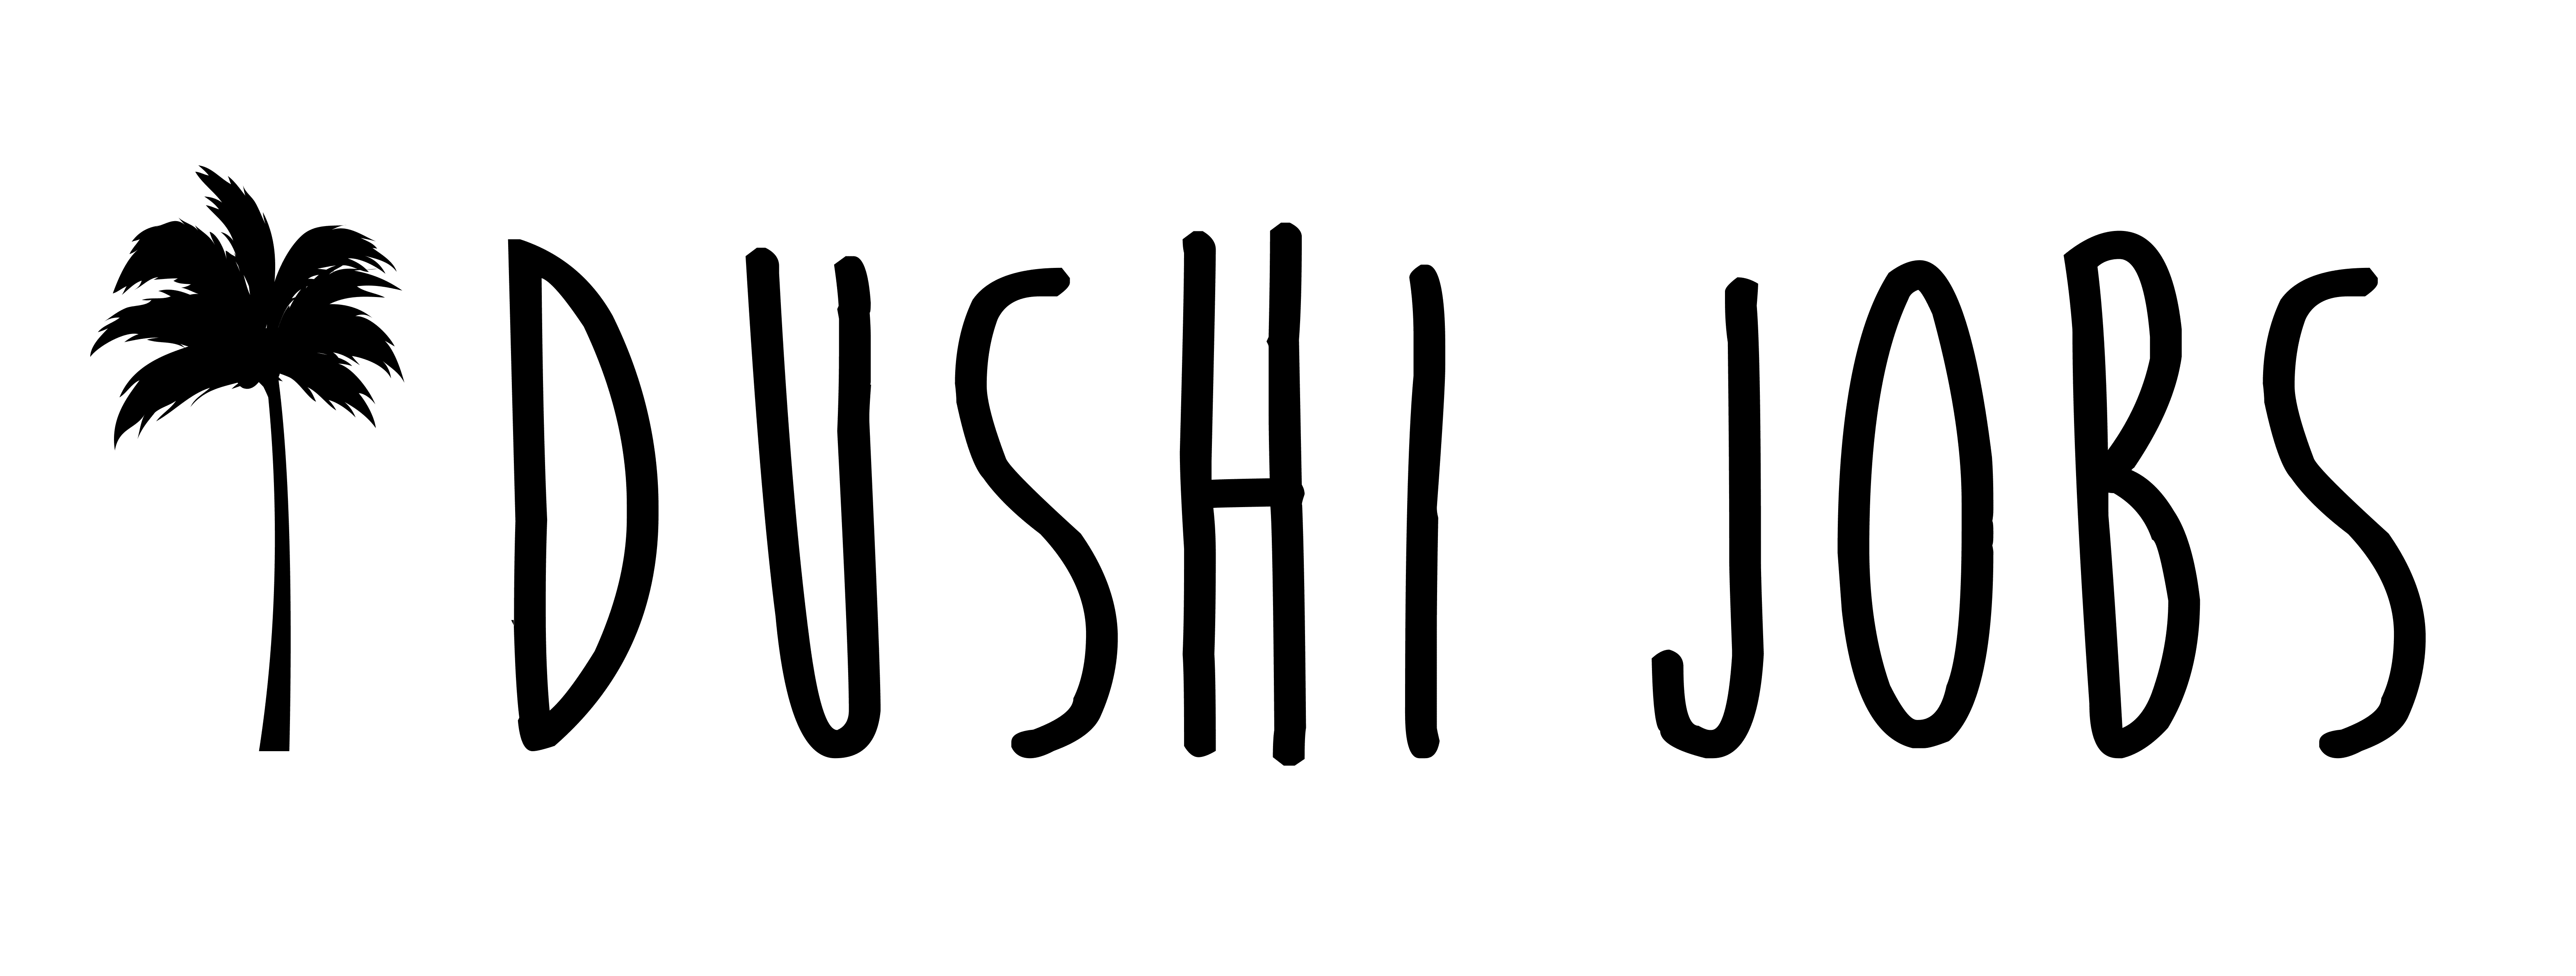 Dushi Jobs vacatures curacao